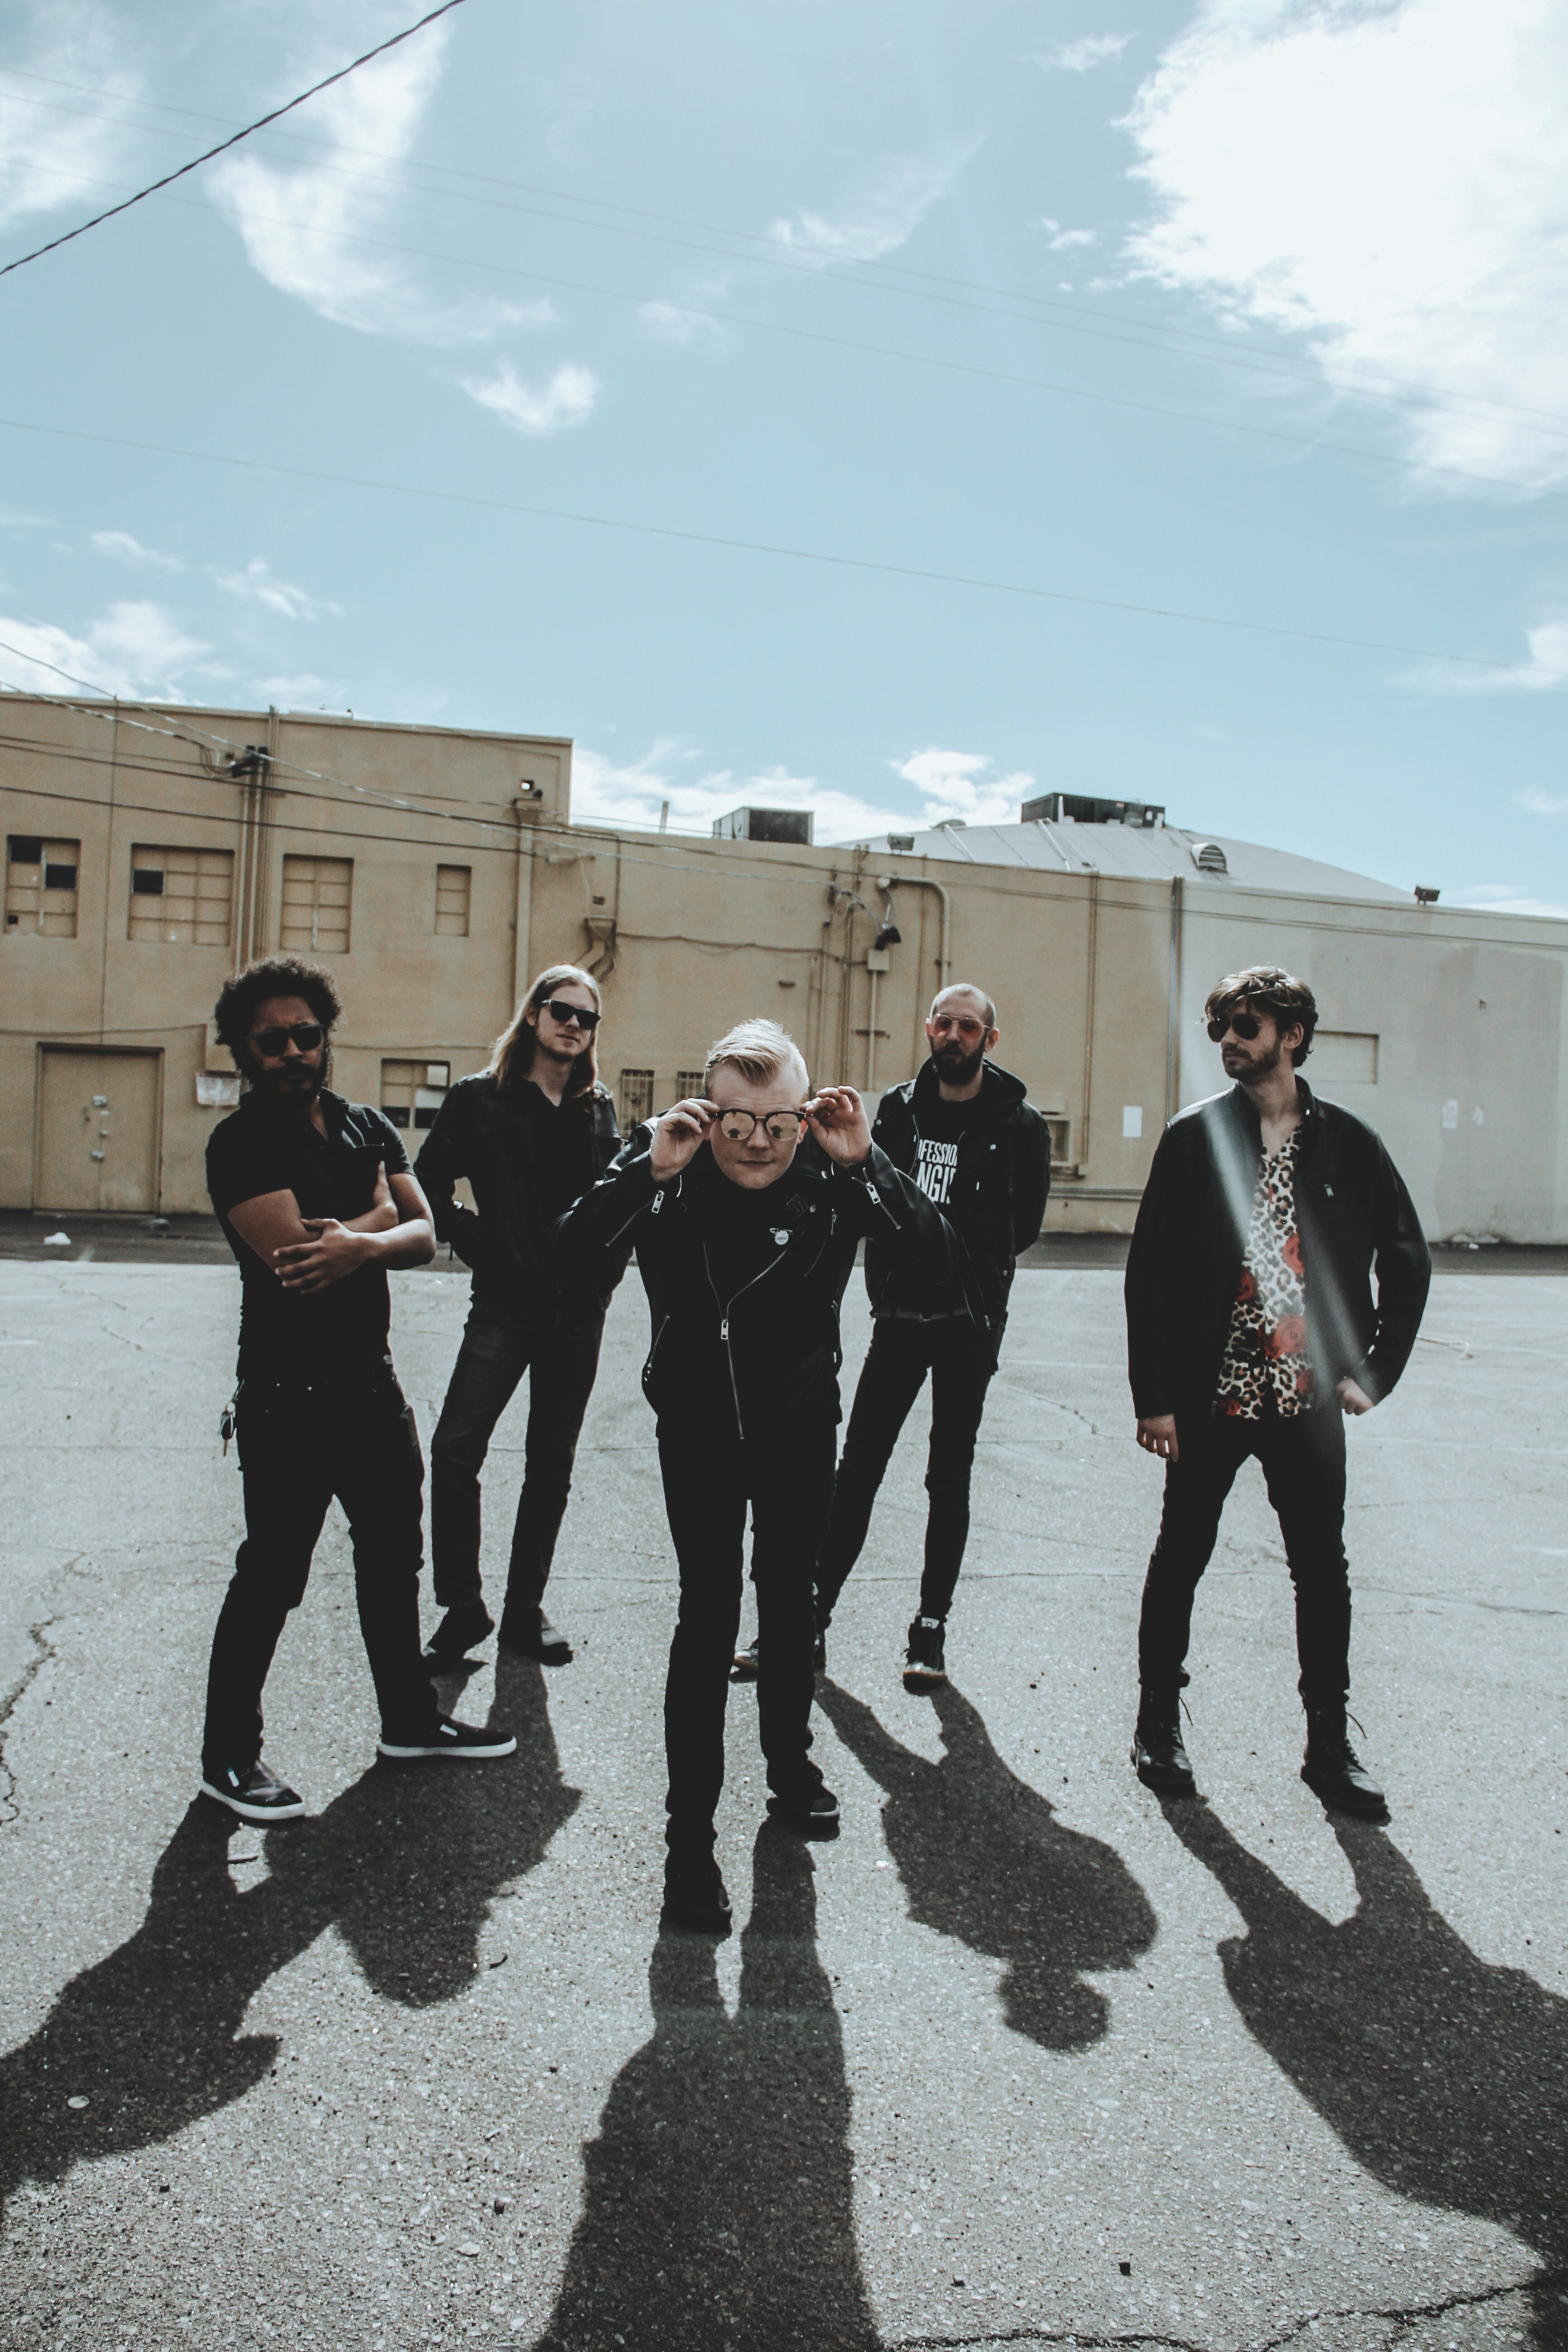 Coronavirus halted the music industry. So Phoenix musicians are connecting to fans online